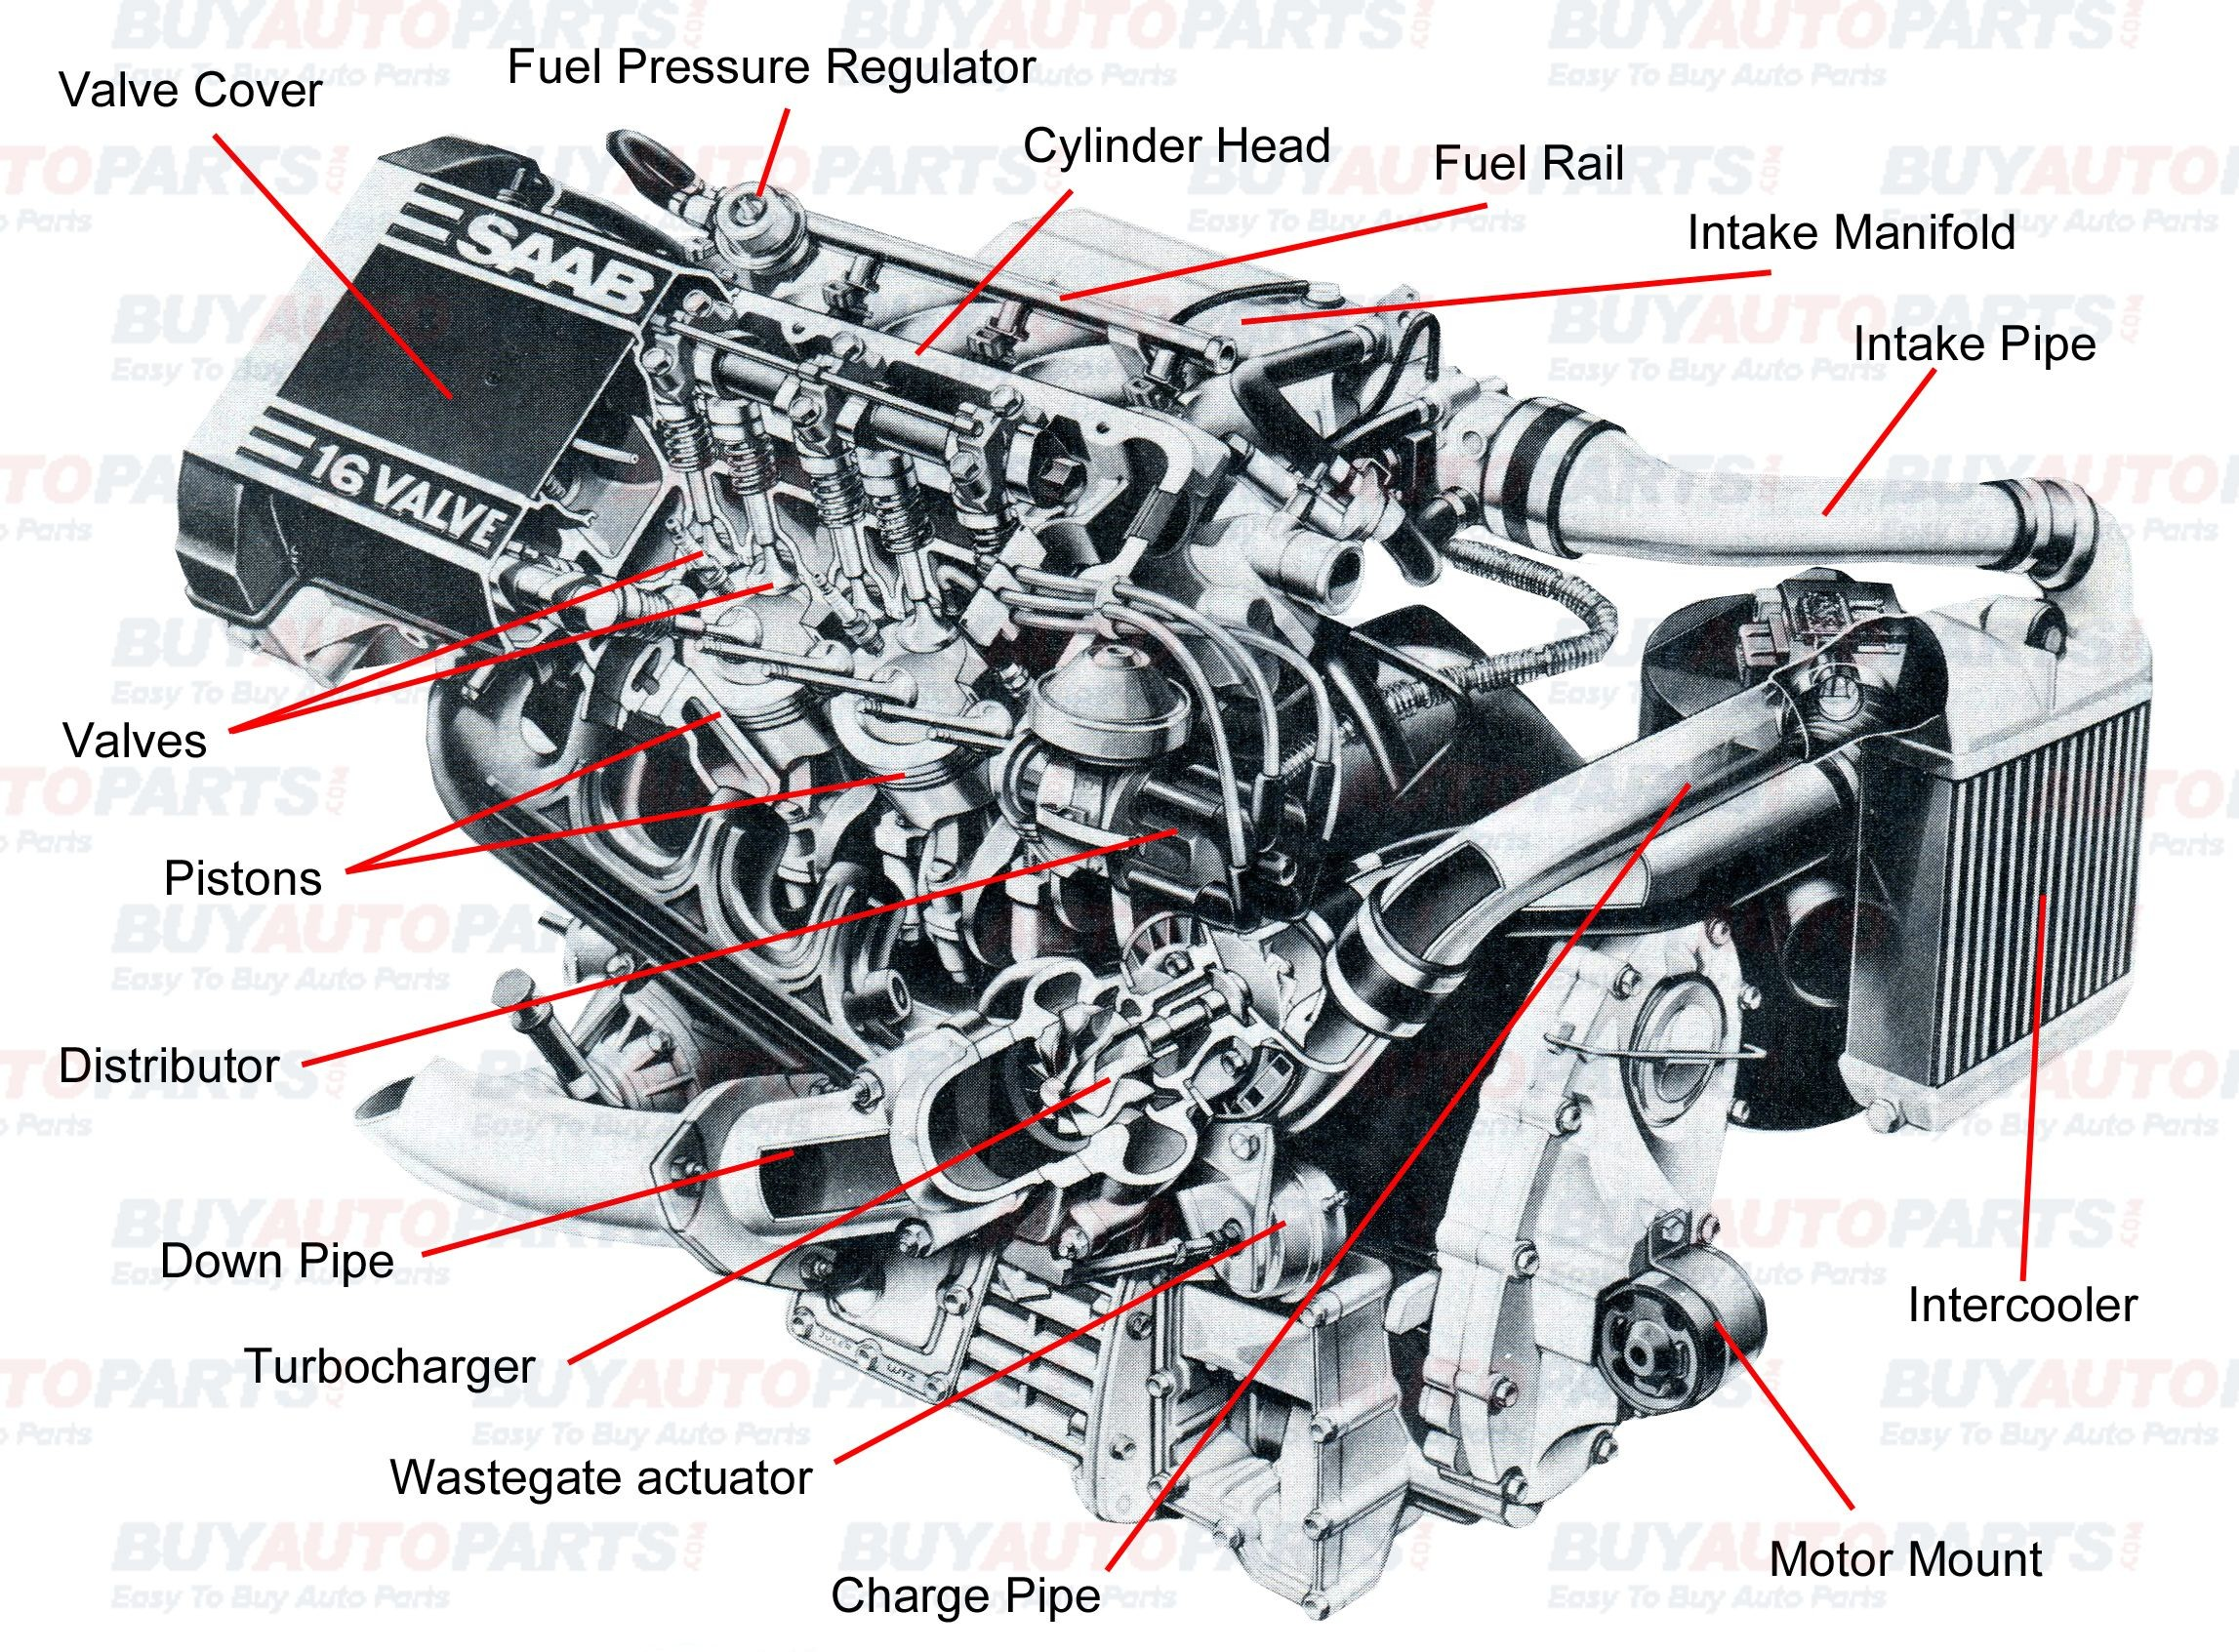 Car Engine Piston Diagram Pin by Jimmiejanet Testellamwfz On What Does An Engine with Turbo Of Car Engine Piston Diagram